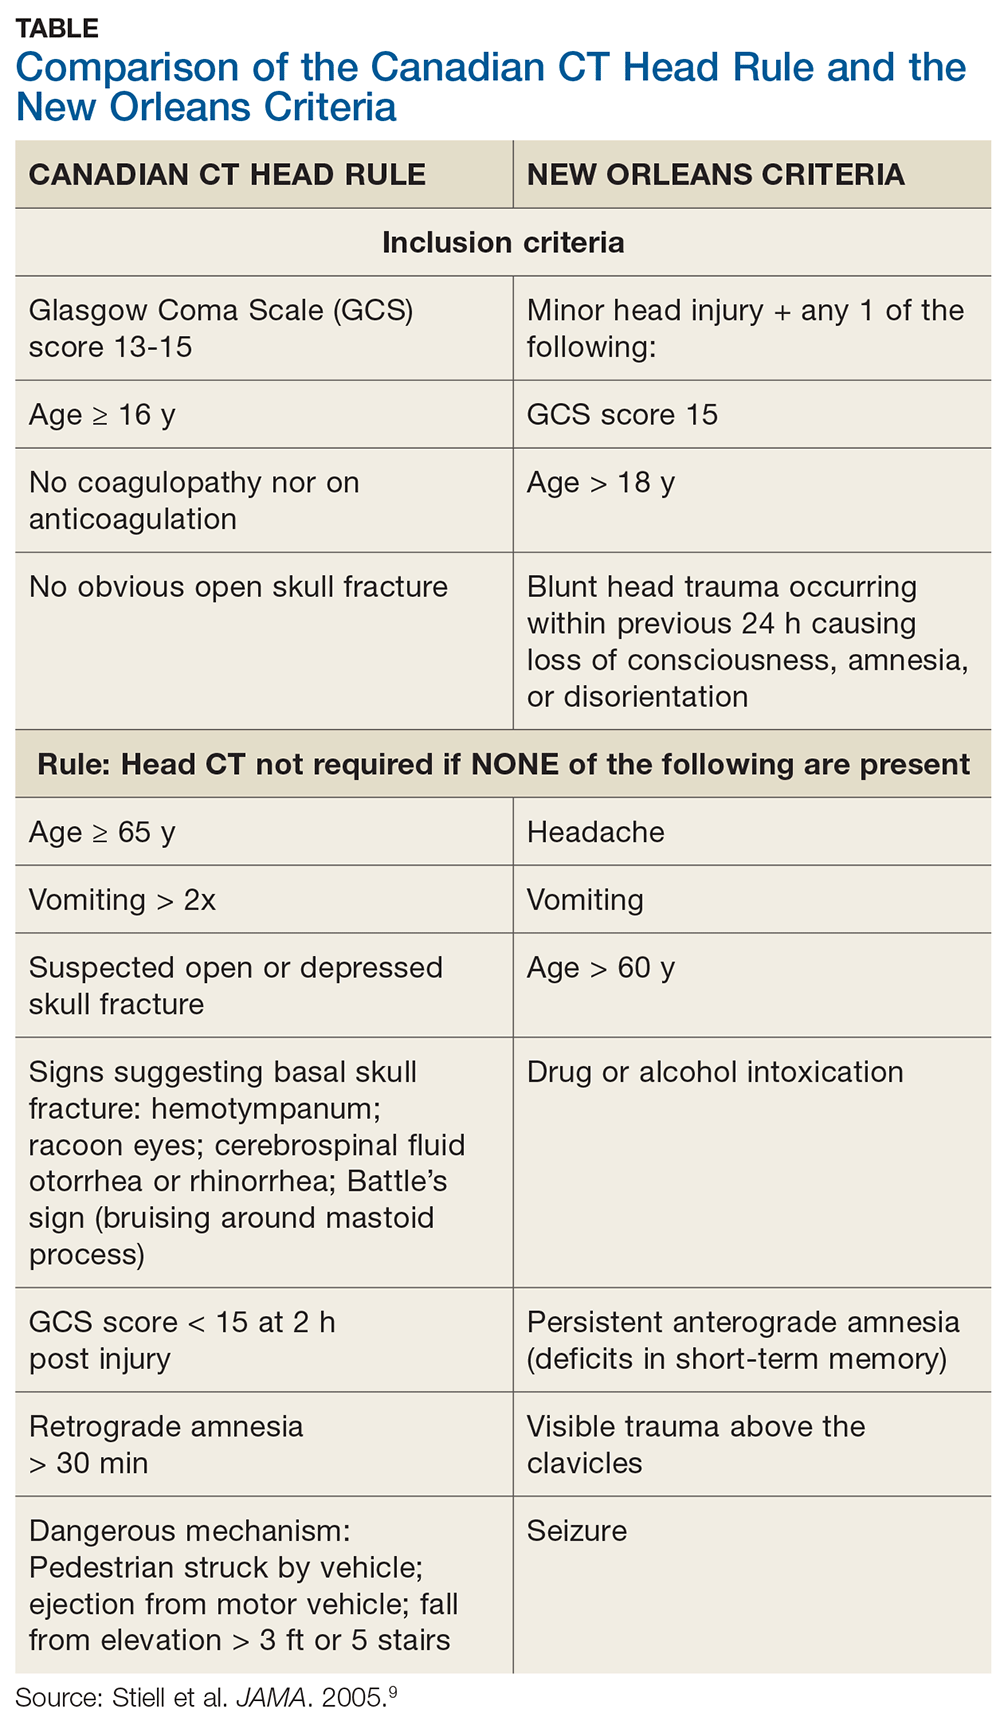 Comparison of the Canadian CT Head Rule and the New Orleans Criteria